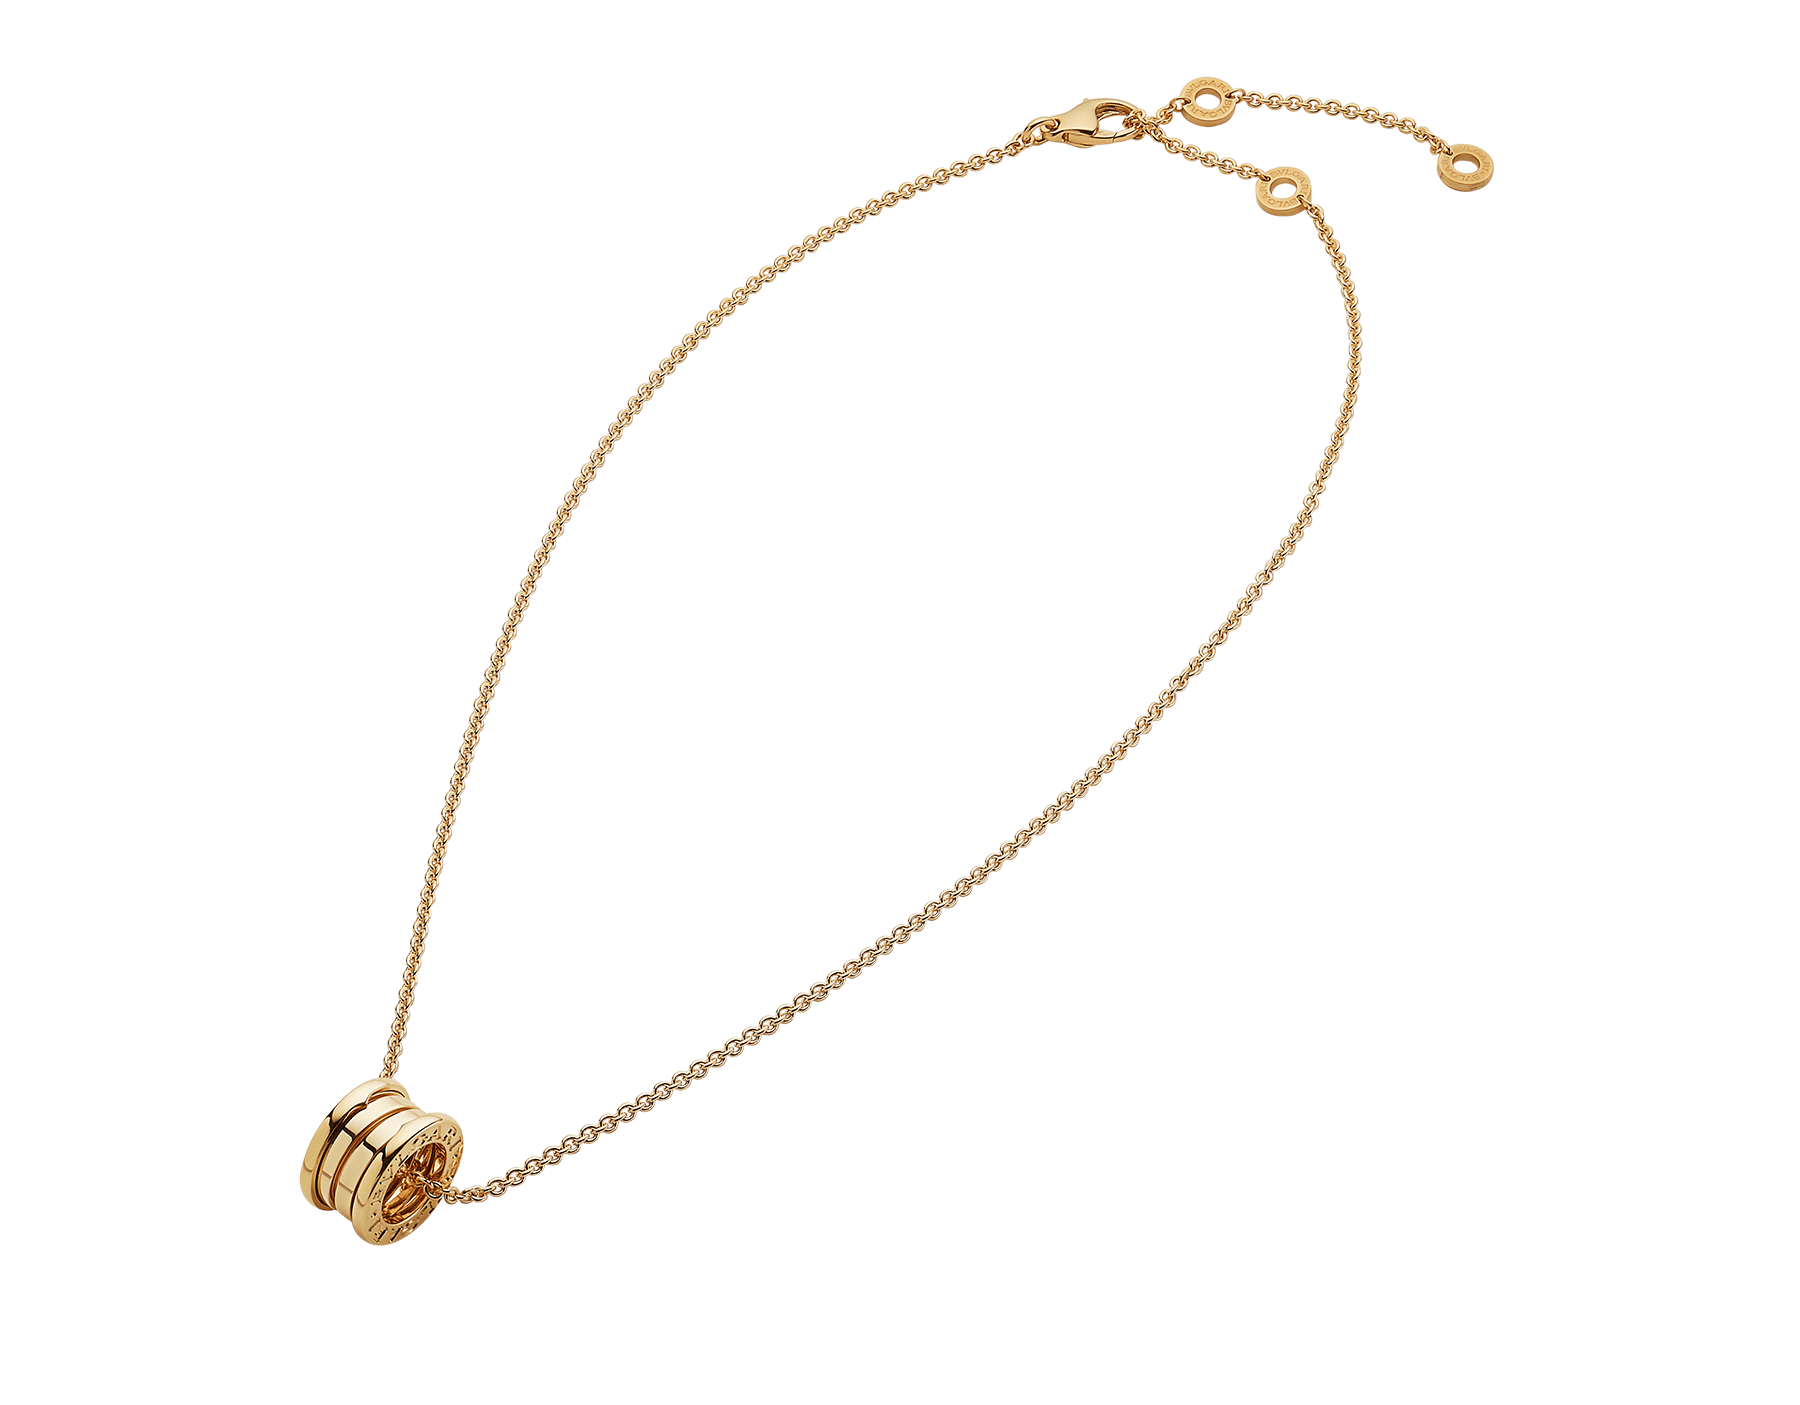 B.zero1 necklace with small round pendant, both in 18kt yellow gold. 352814 image 2